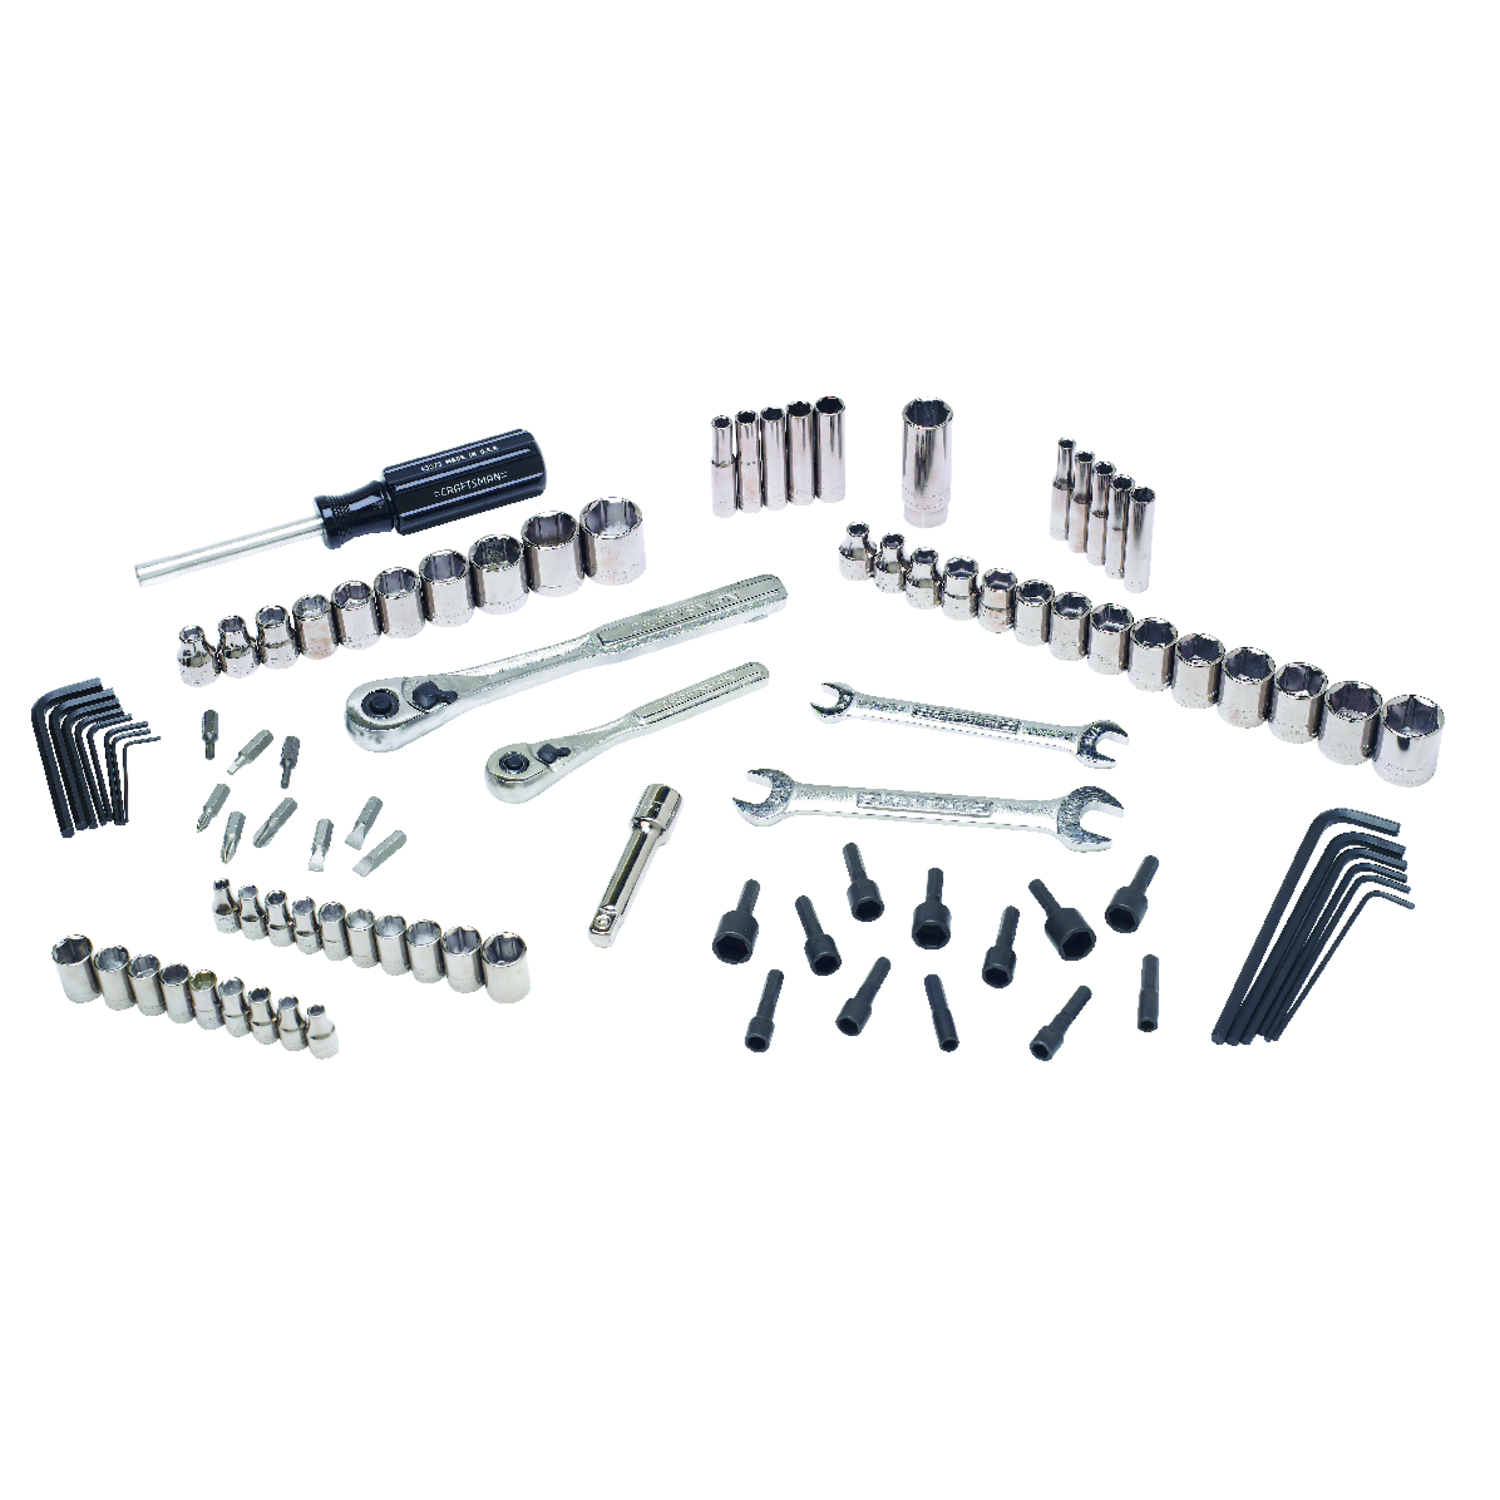 Craftsman  1/4 in.  x 1/4 in. drive  Metric  6 Point Mechanic�s Tool Set  95 pc.